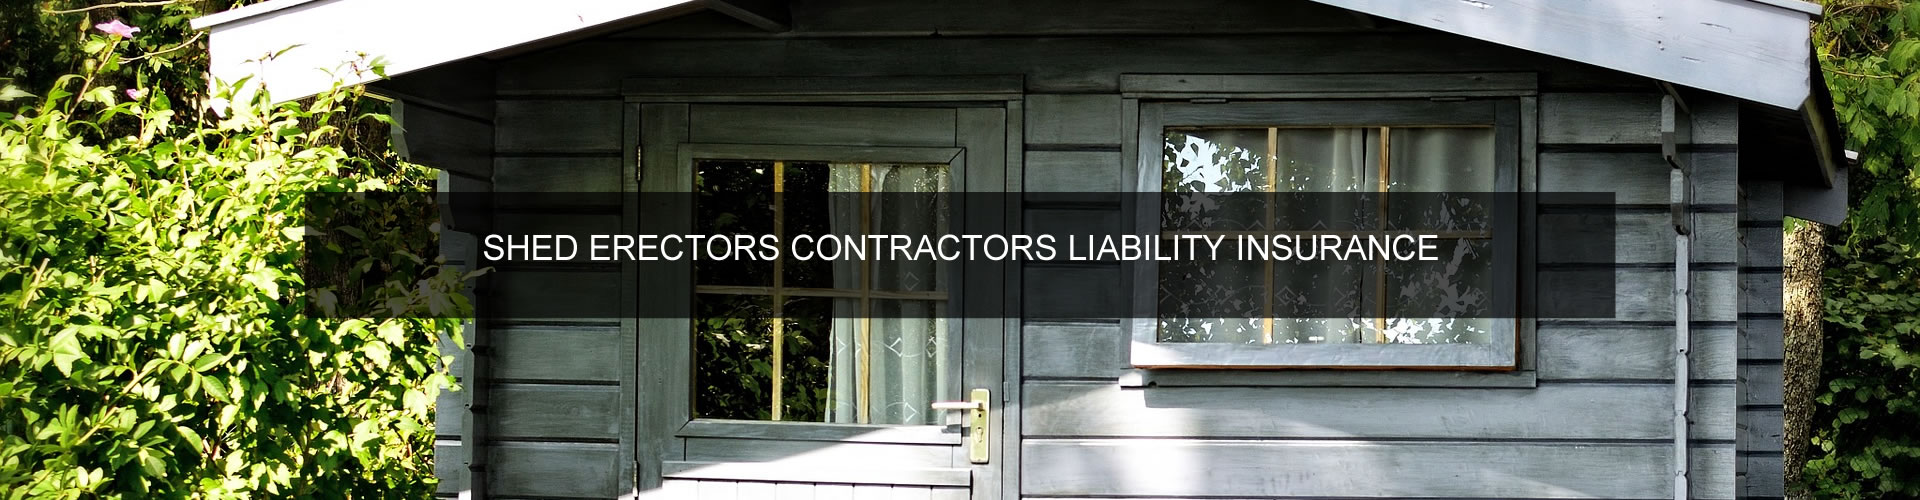 Shed Erectors Contractors Liability Insurance